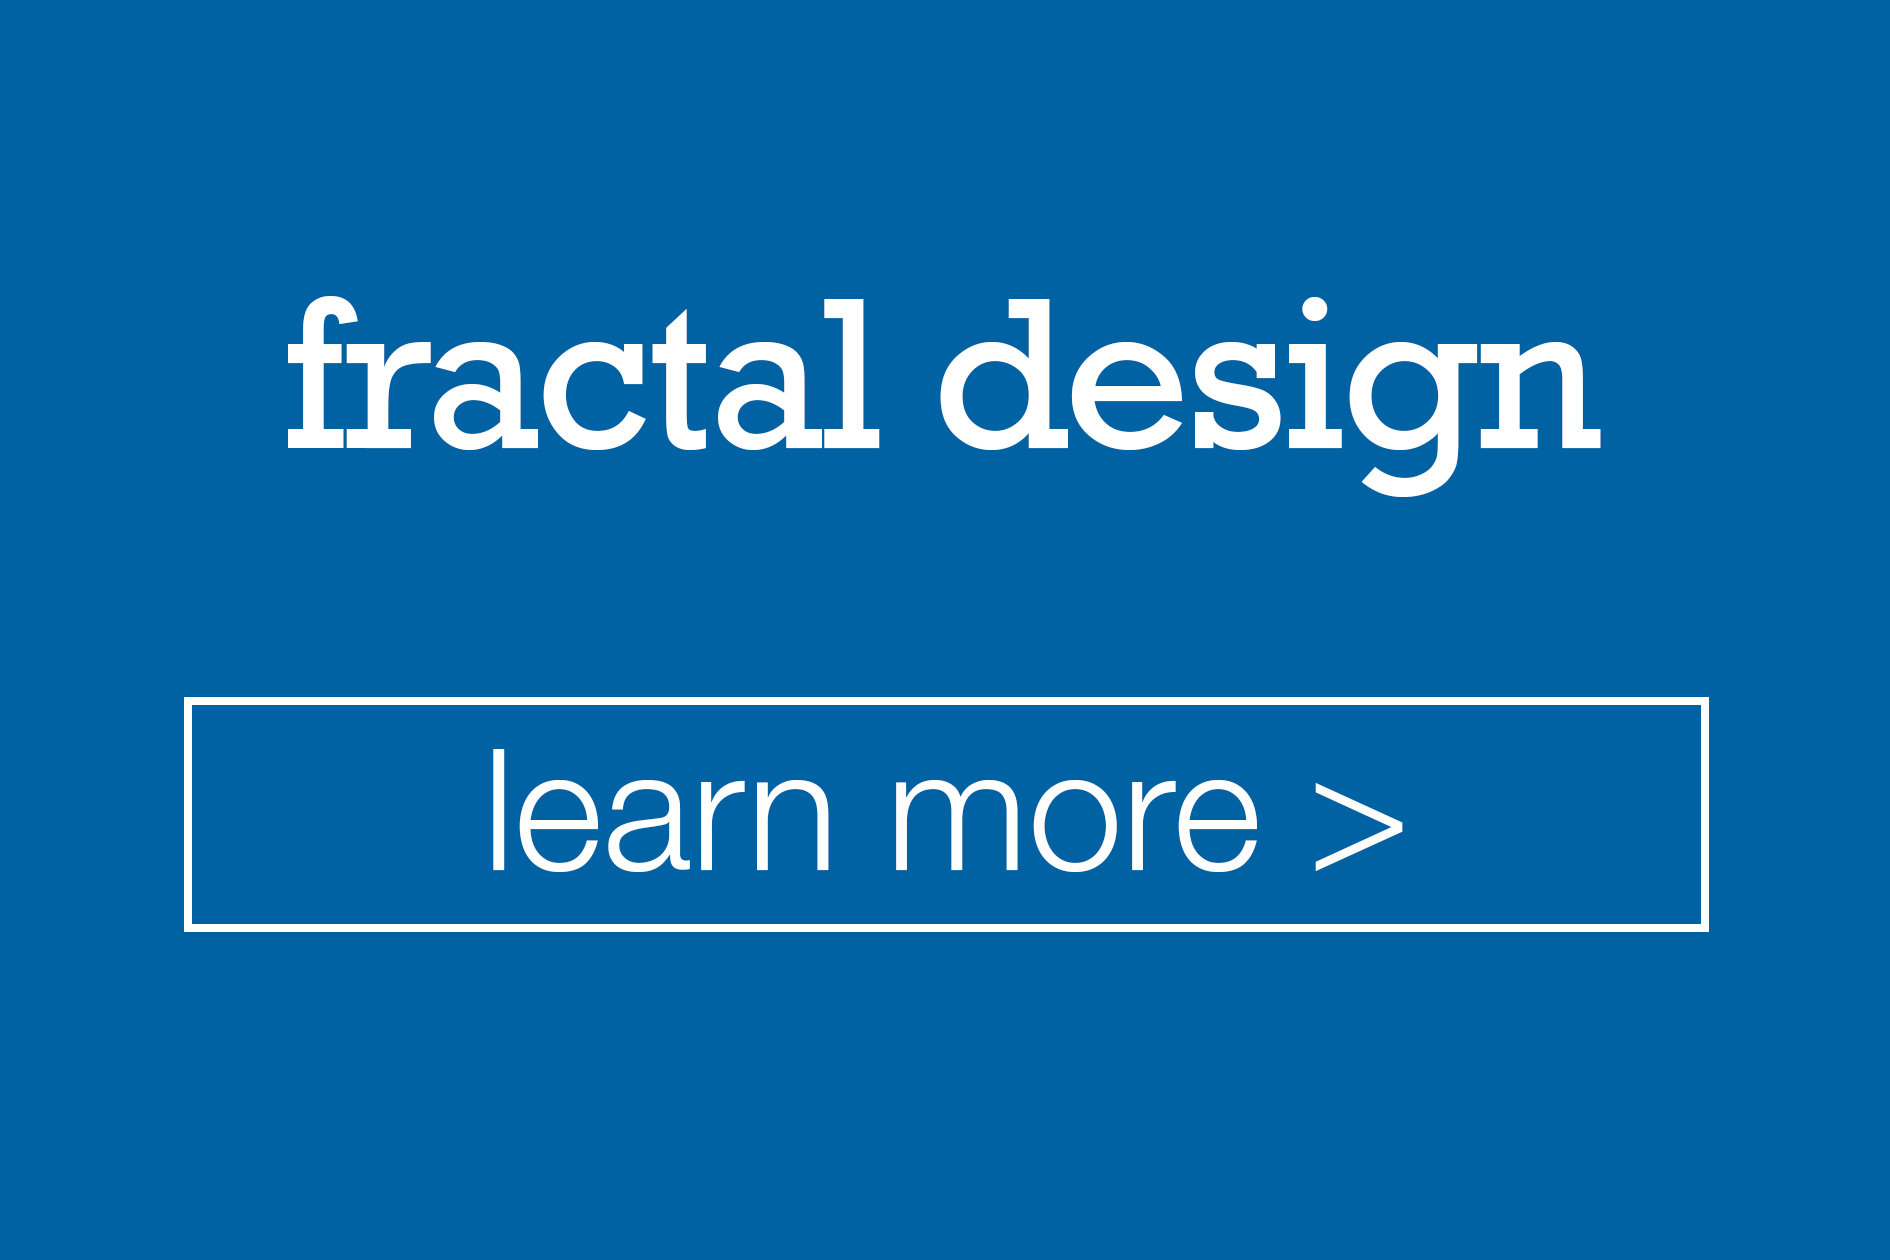 category-icon-fractal-design